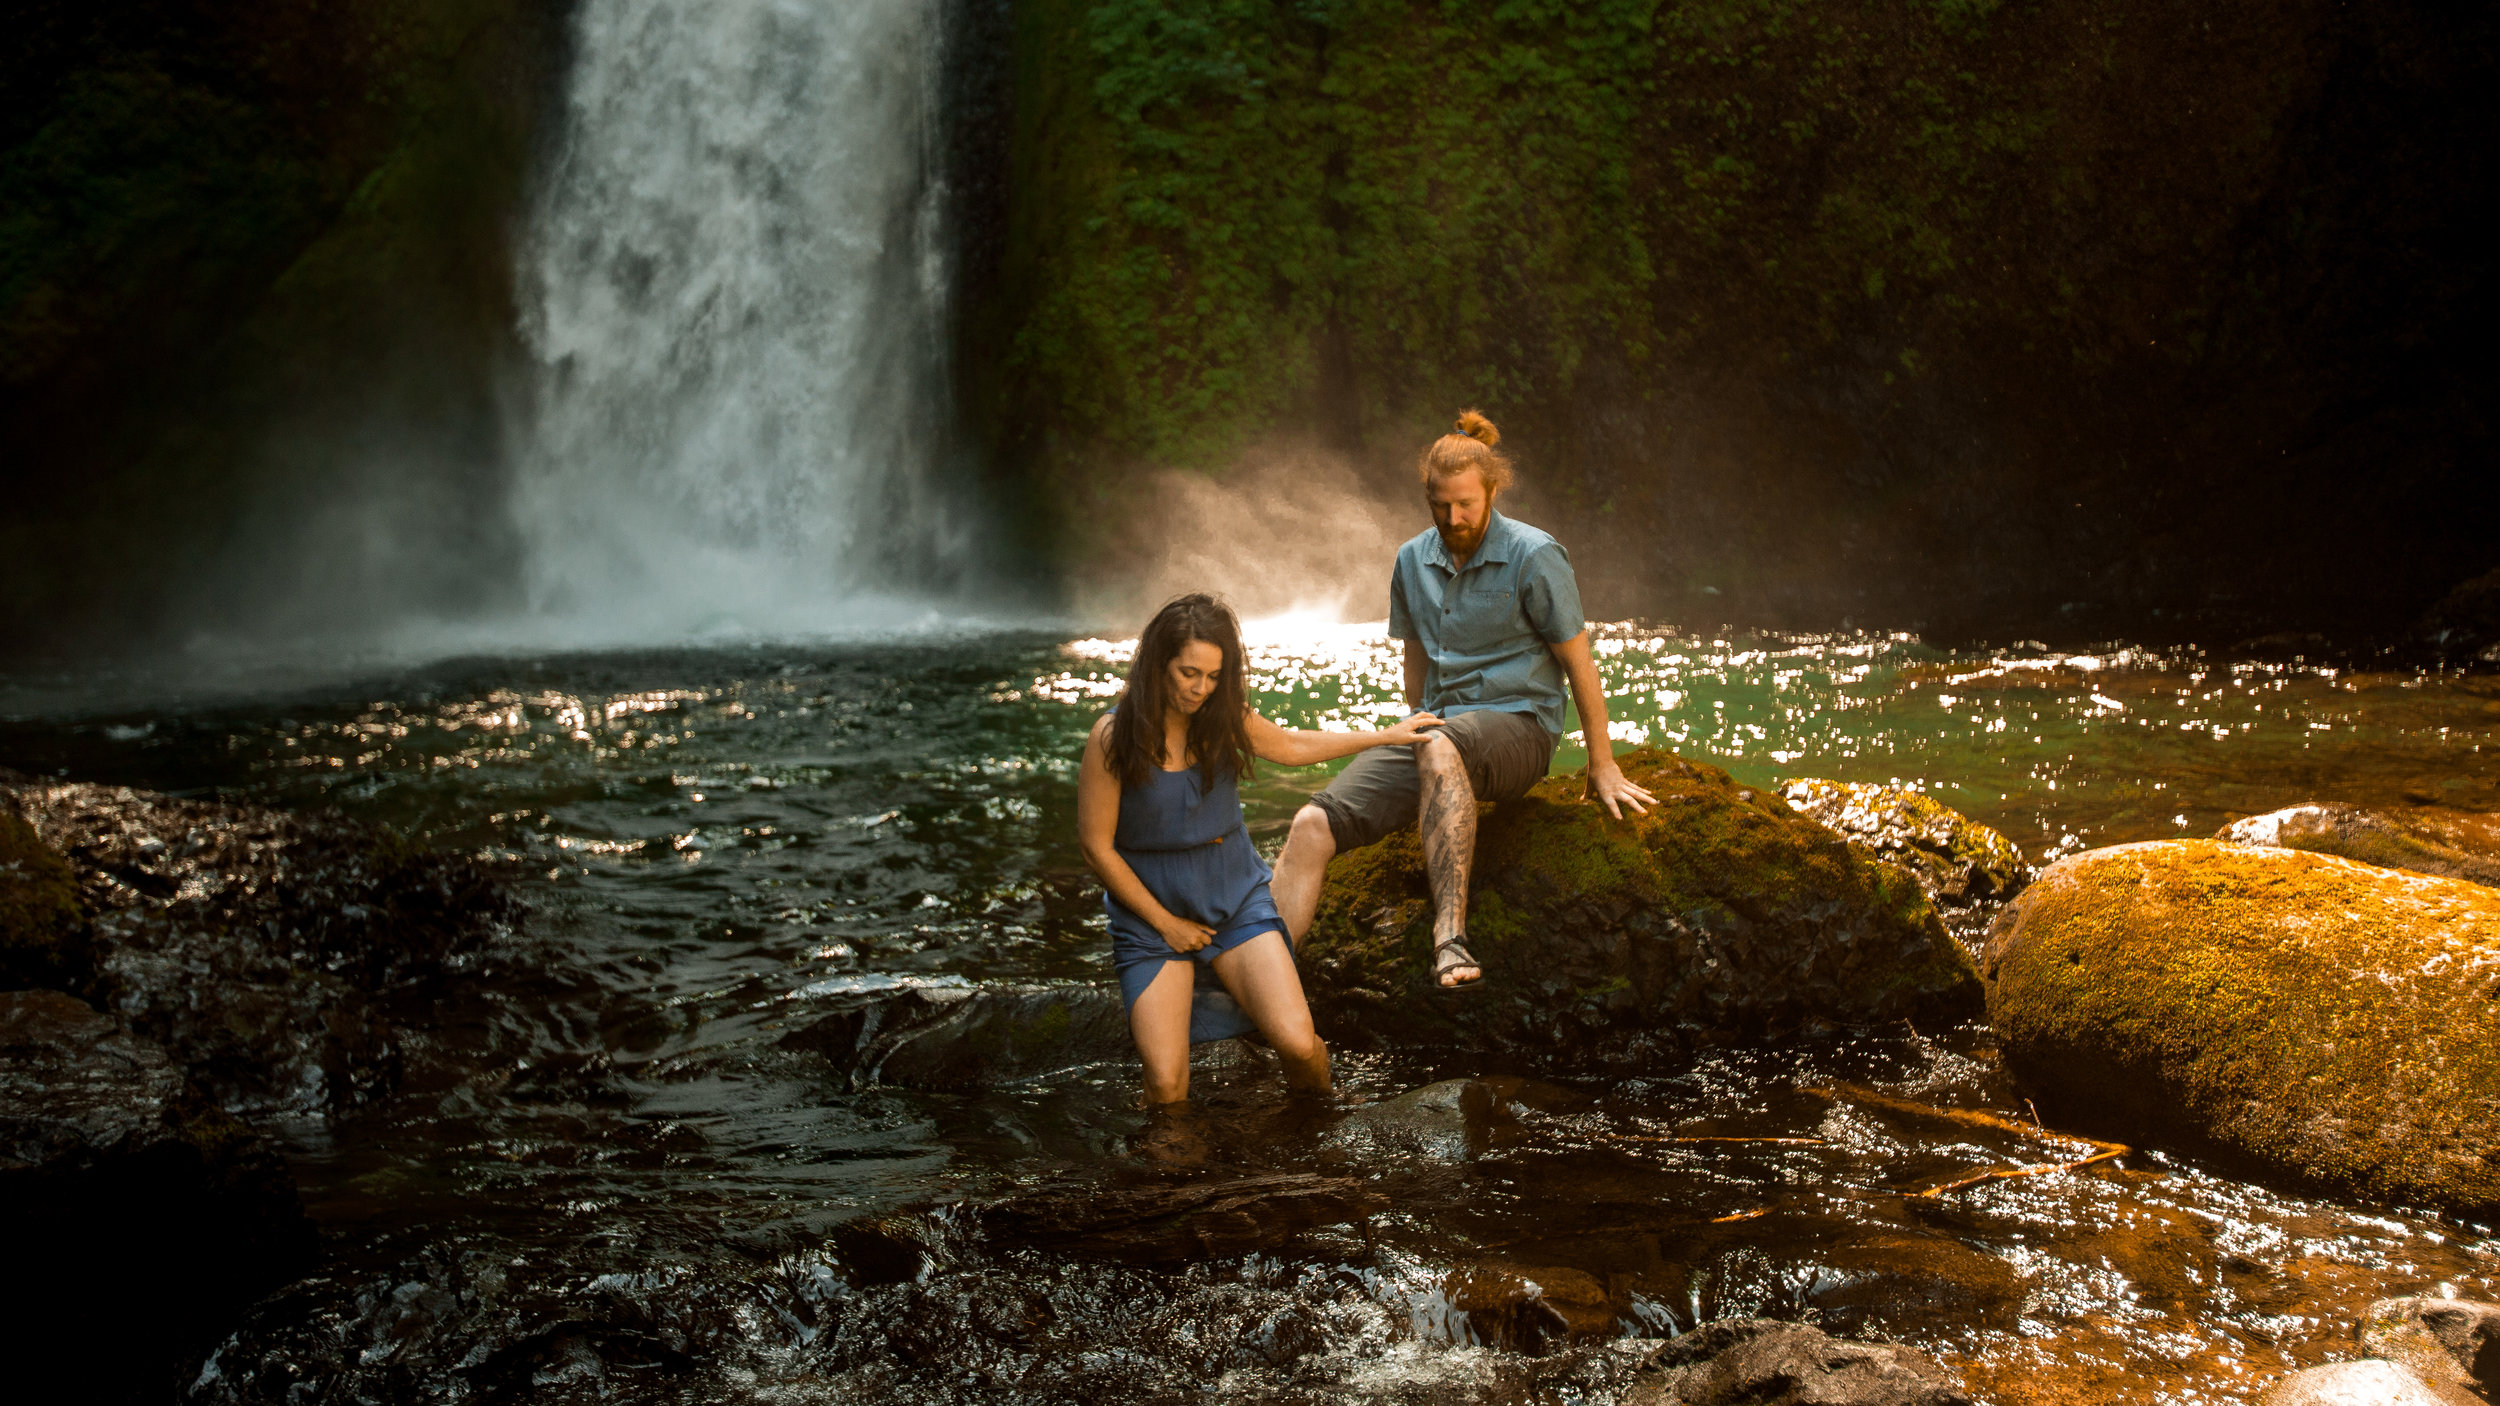 nicole-daacke-photography-wahclella-falls-waterfall-engagement-session-portland-engagement-photographer-columbia-river-gorge-oregon-elopement-photographer-31.jpg